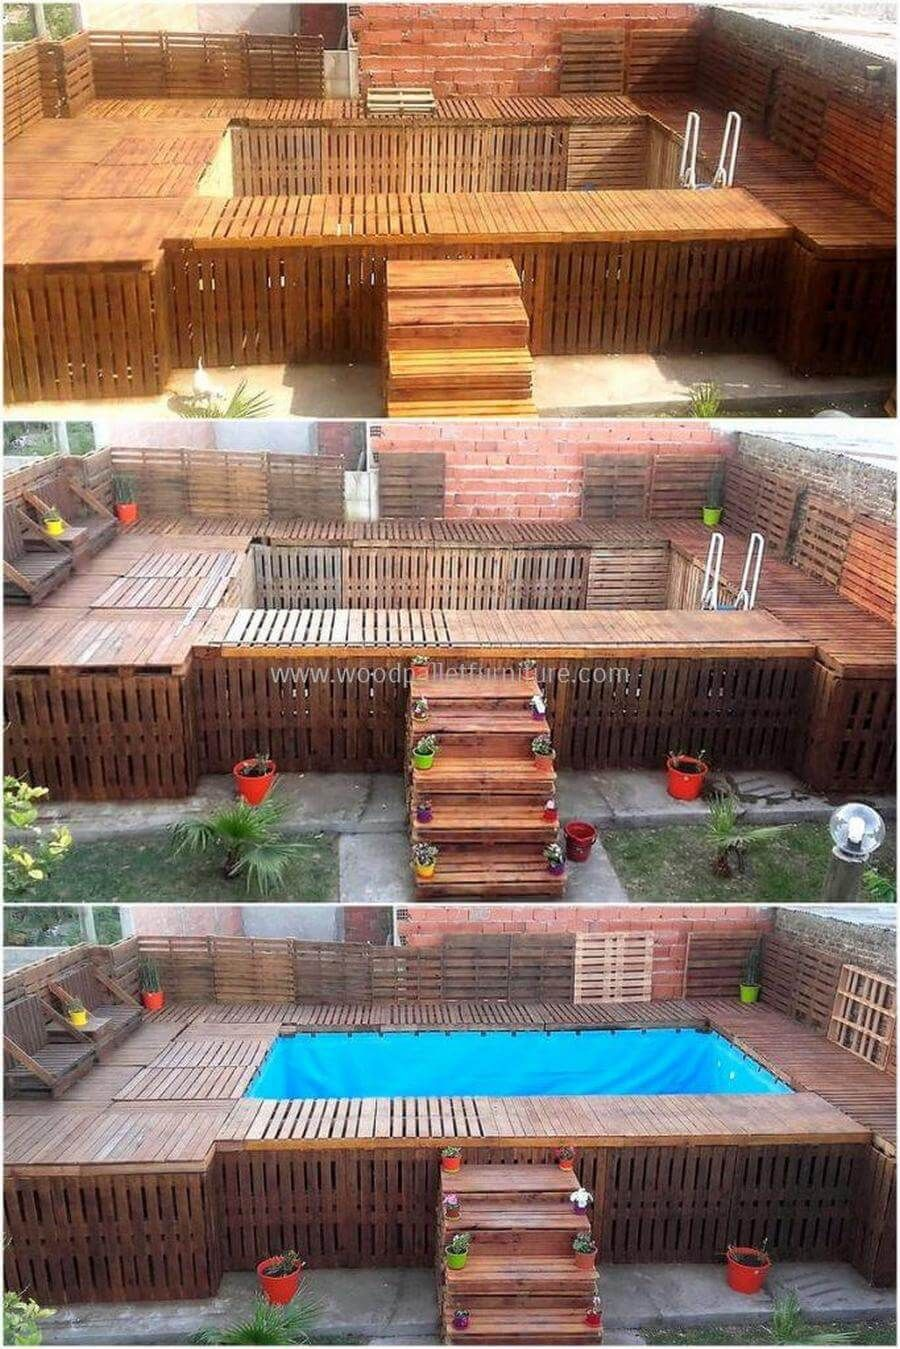 Merveilleux Here We Are Bringing To You An Awesome Creation Made By Recycling The Old  Wooden Pallets